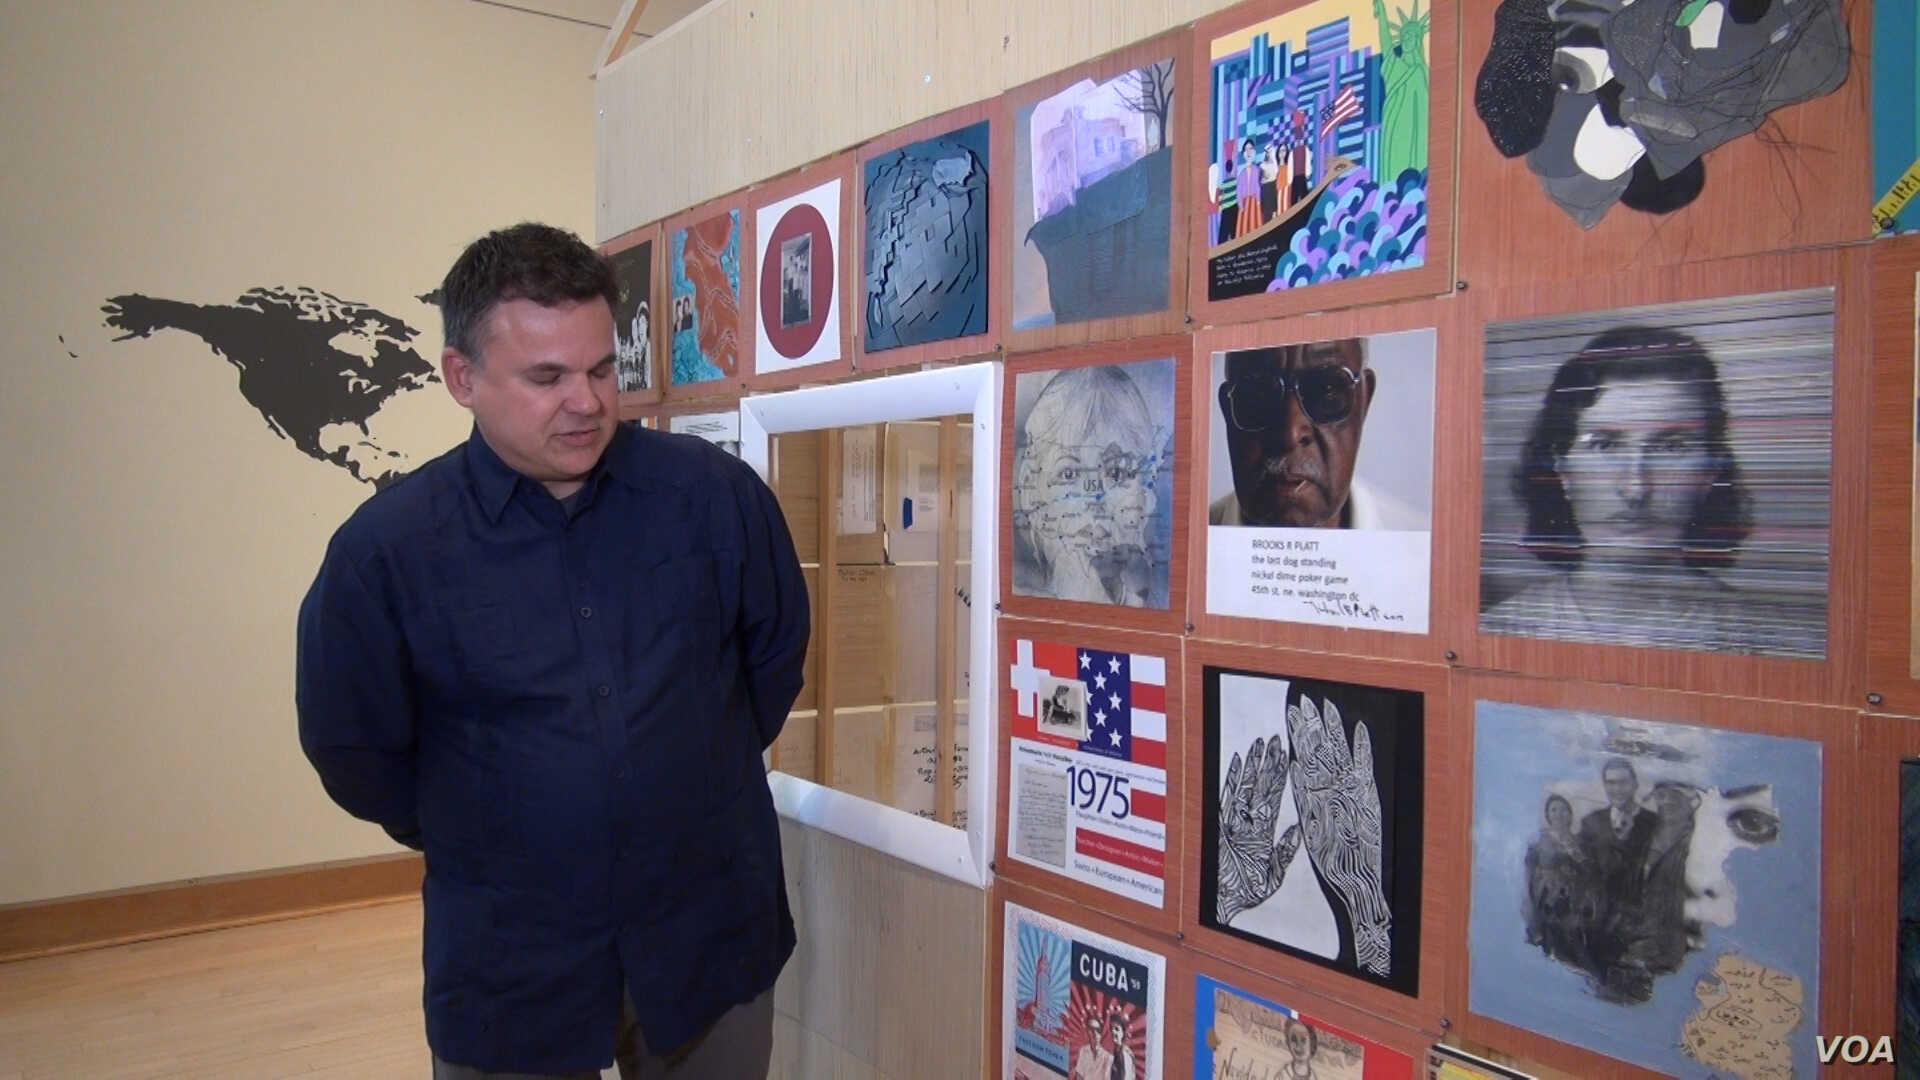 Artist Ric Garcia stands in front of a wall of panels, each one representing the immigrant background of a different artist. Garcia's is the panel from Cuba. (Jsoh/VOA)